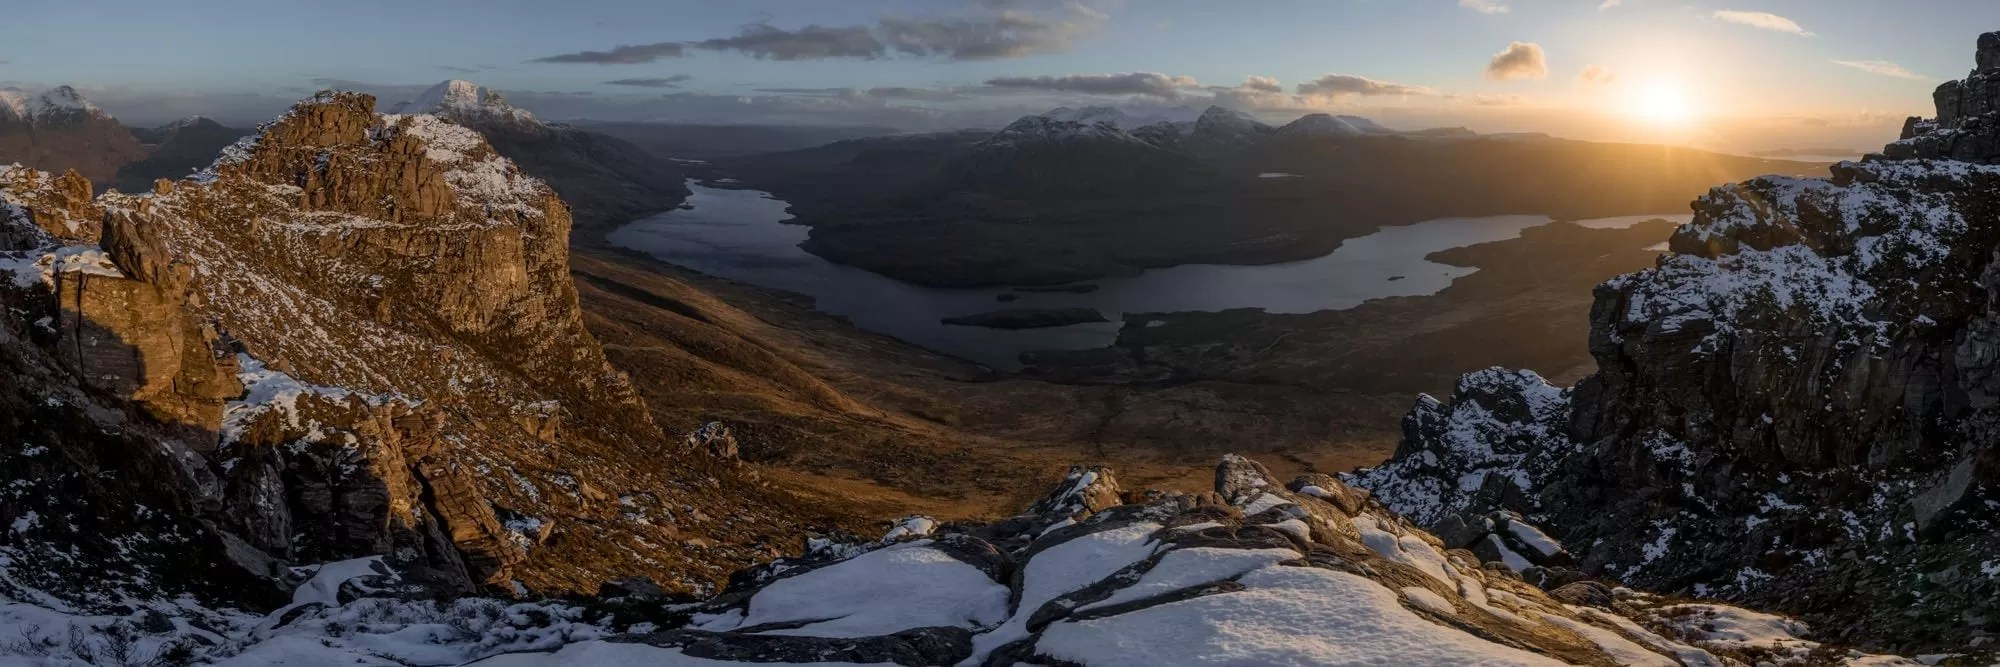 Stac Polliadh Panoramic Sunset - Scotland Photography